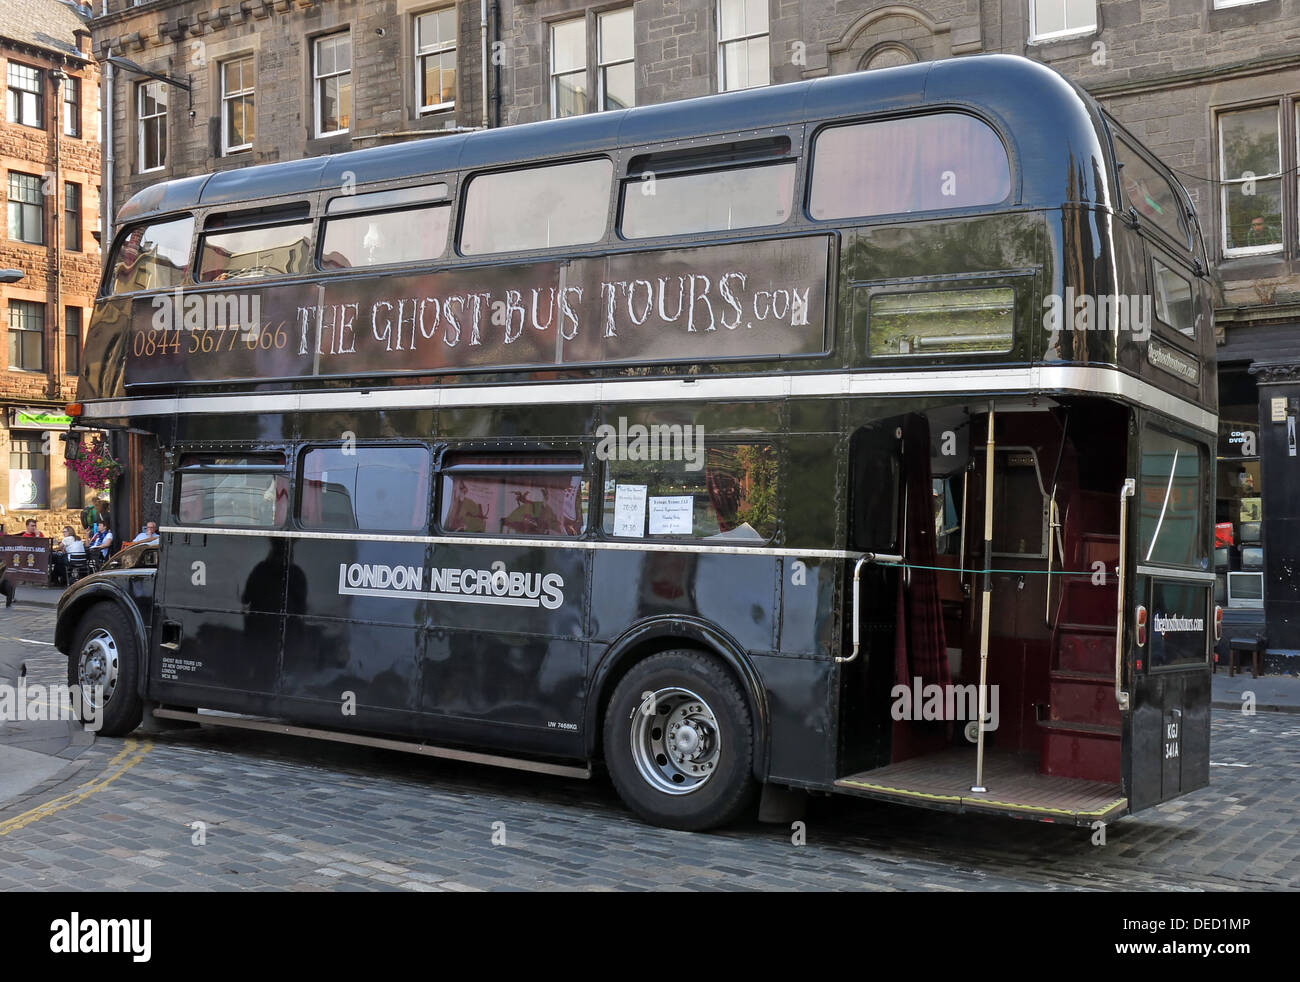 The black London Necrobus, in Edinburgh, Scotland, UK - Stock Image